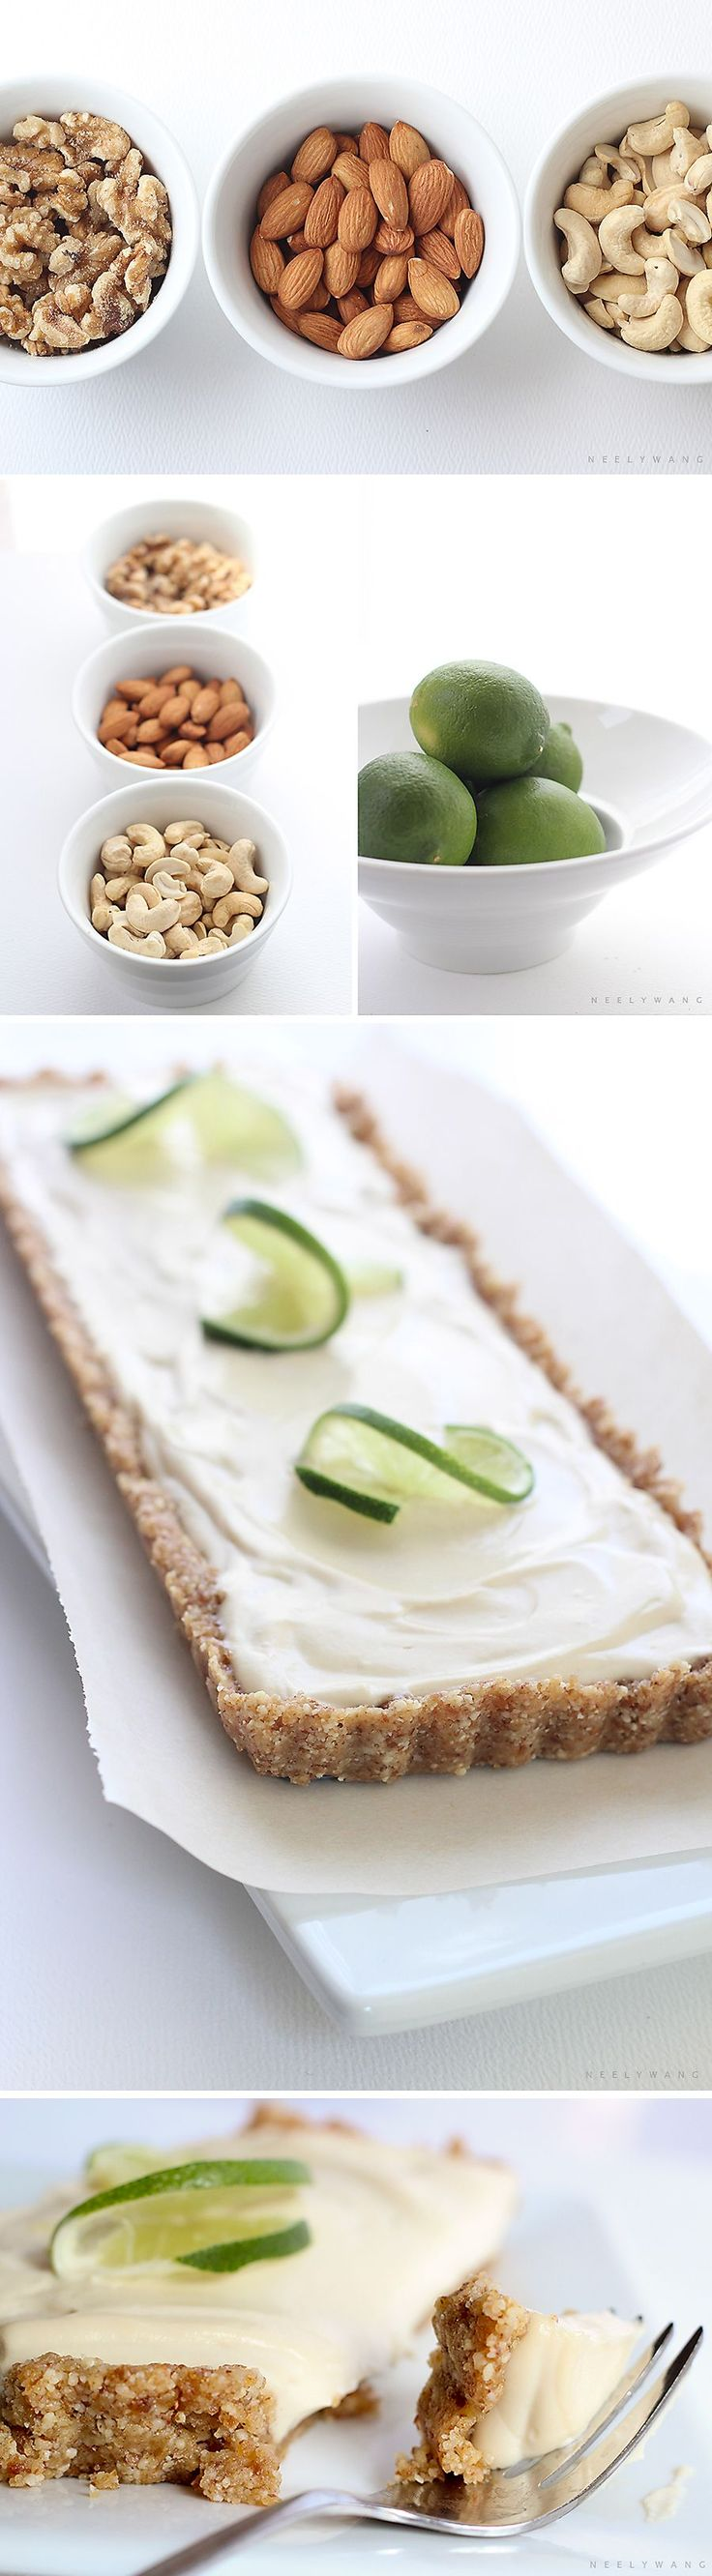 bake | raw vegan lime tart « Neely Wang | Photography + Design